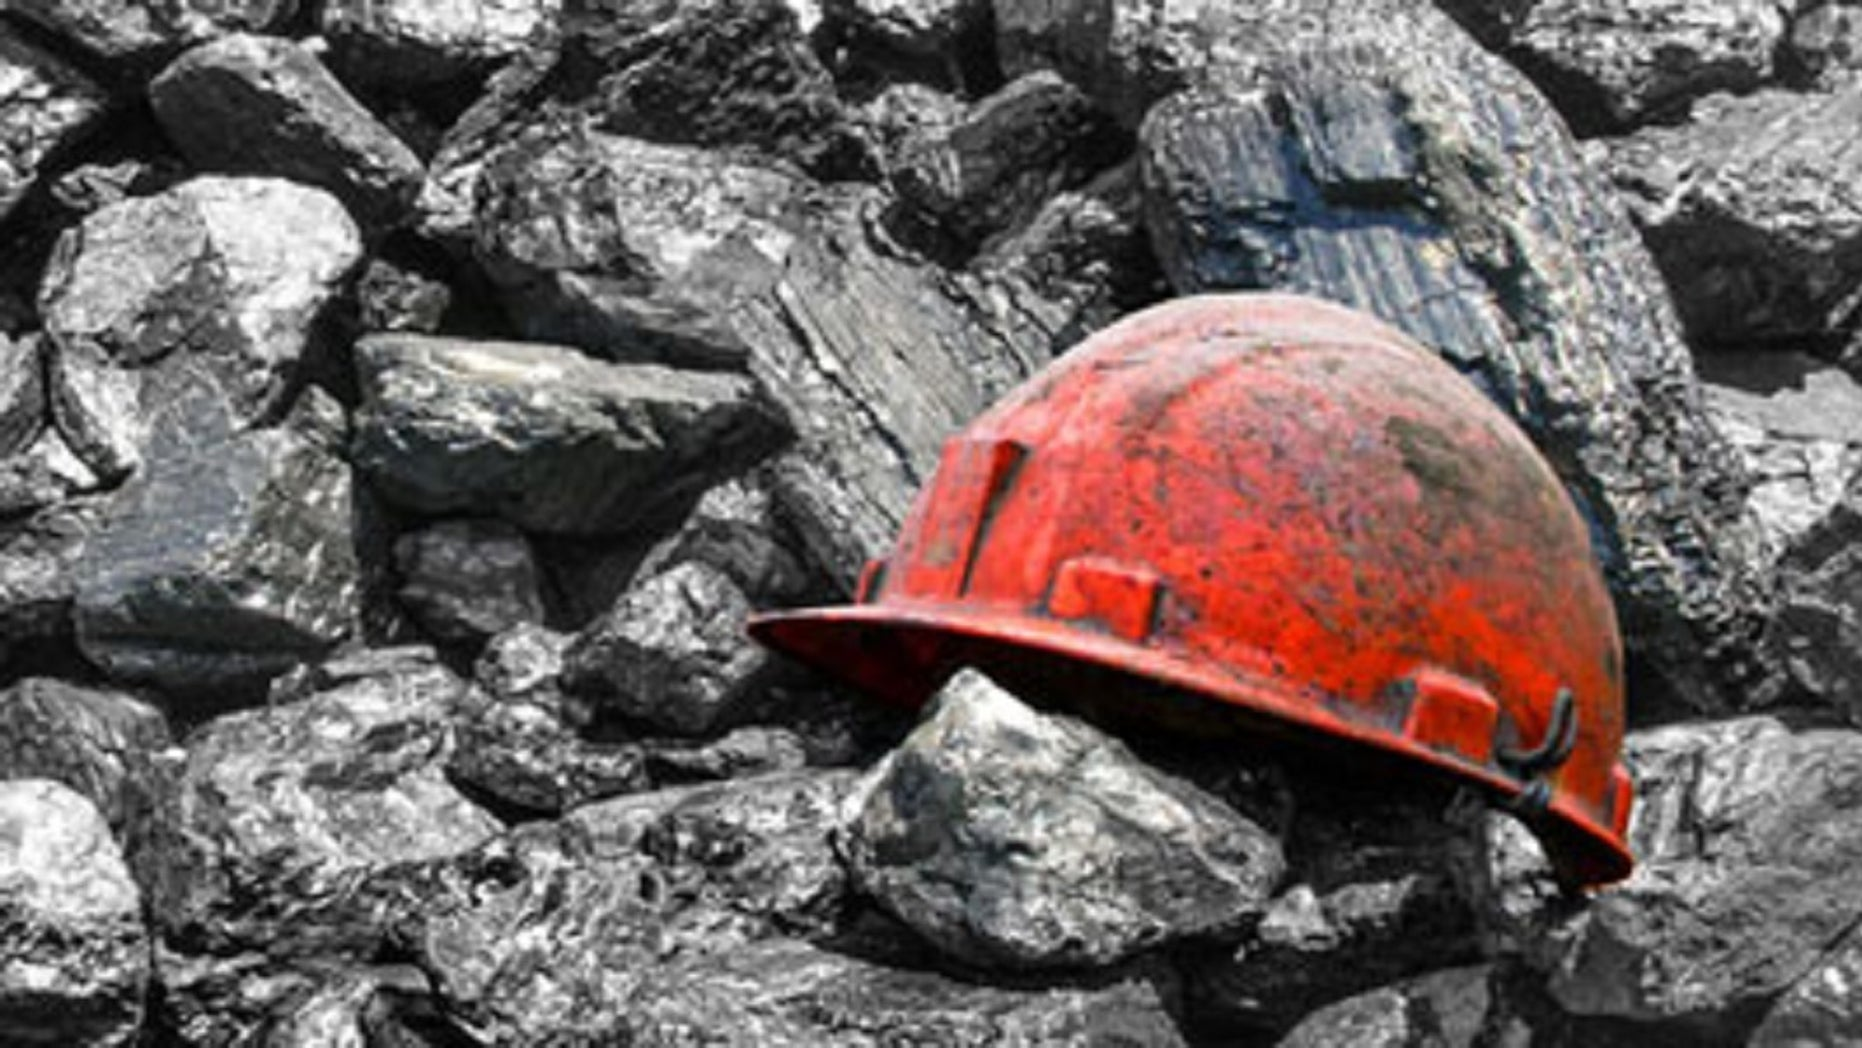 Three people lost in an abandoned West Virginia coal mine have been found alive, officials said.